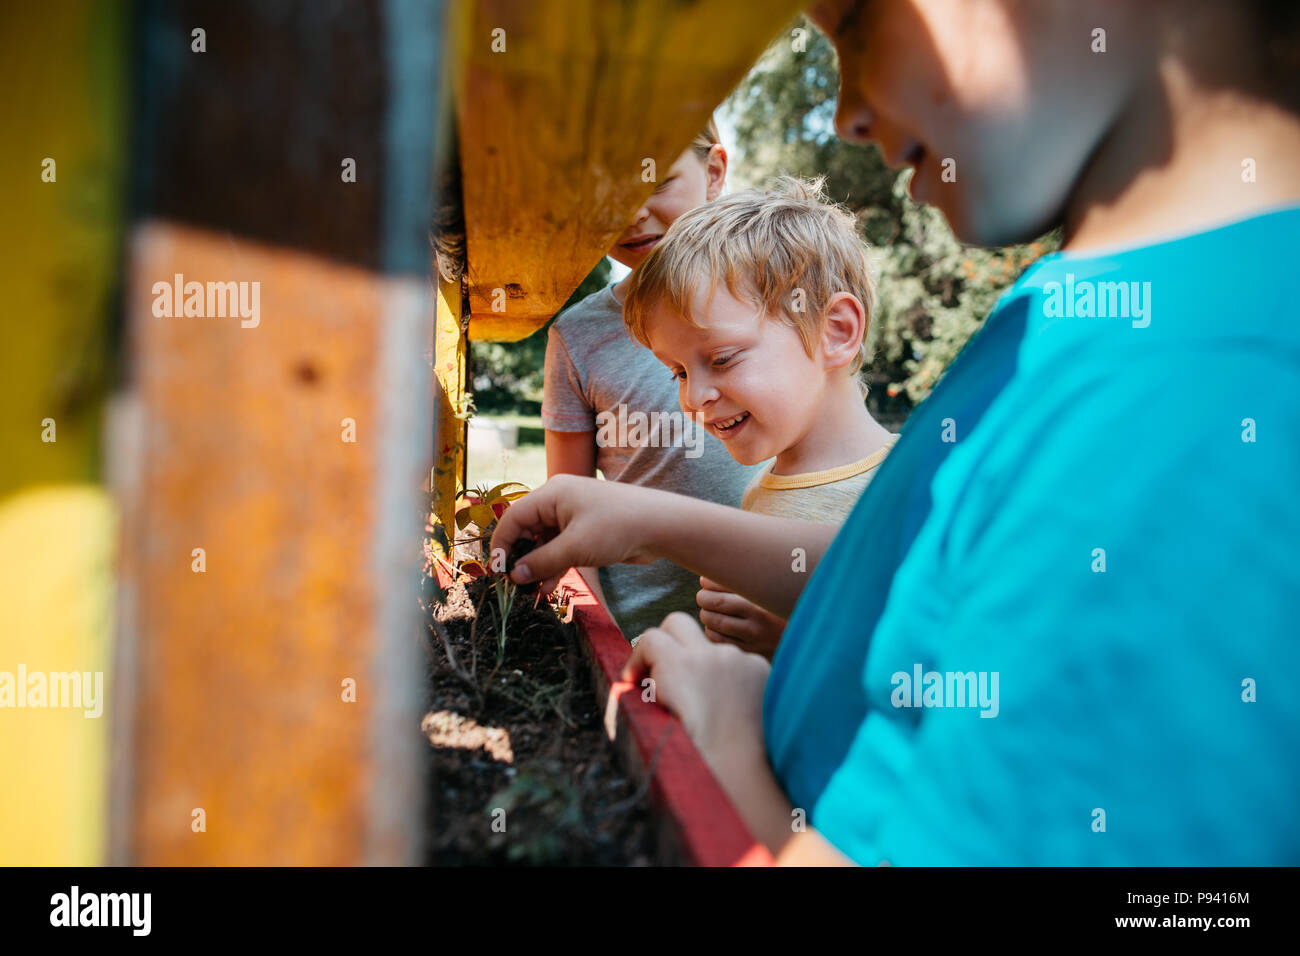 Young students learning about plants in a park. Group of children planting plants together in a garden on a sunny day. - Stock Image